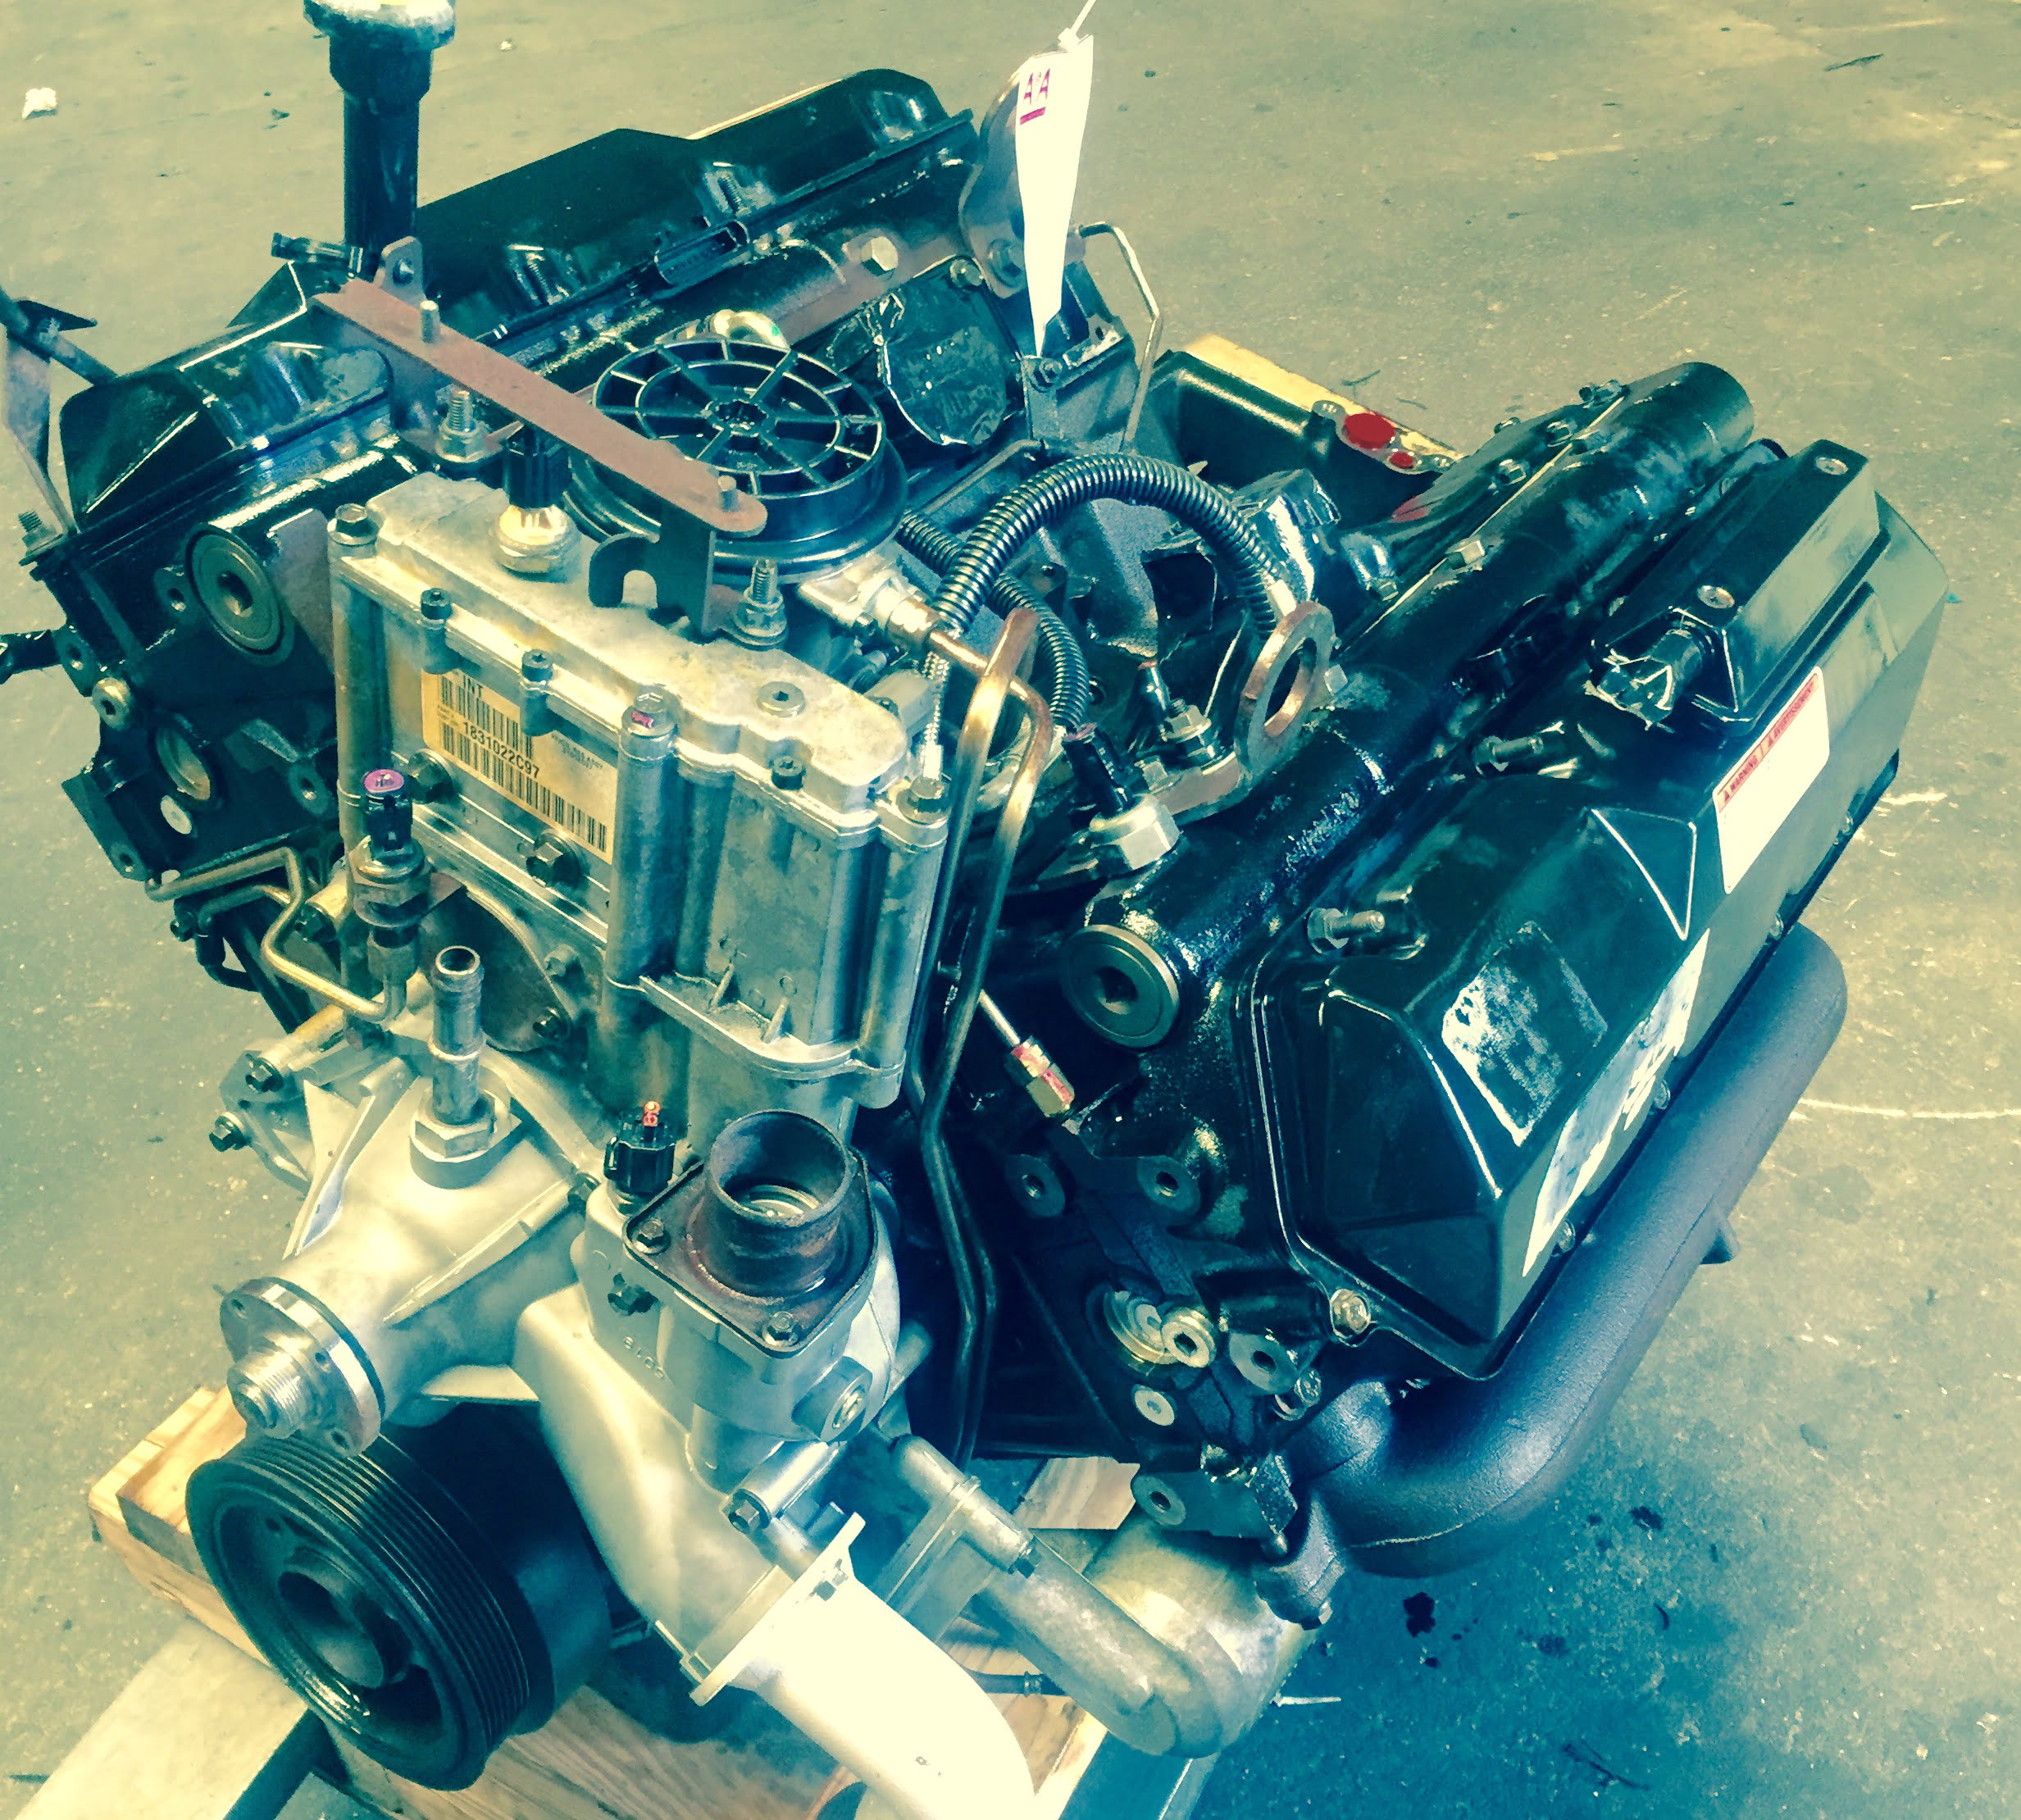 Ford F250 / F350 / F450 / F550 Engine 7.3L Diesel 2001 ...